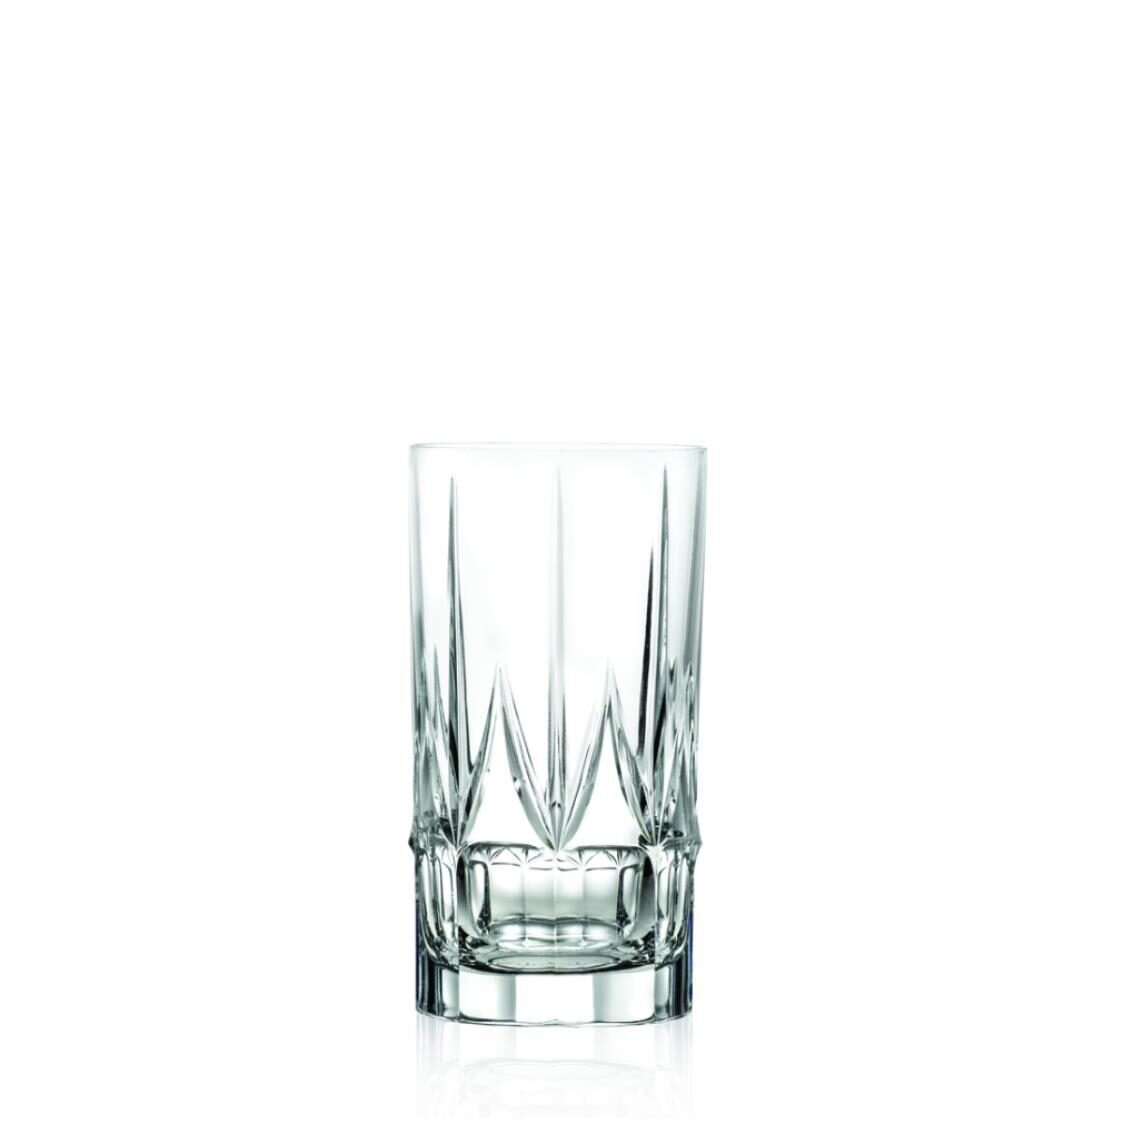 Chic  0 Tumbler HB Tumbler 6pc Set 262330